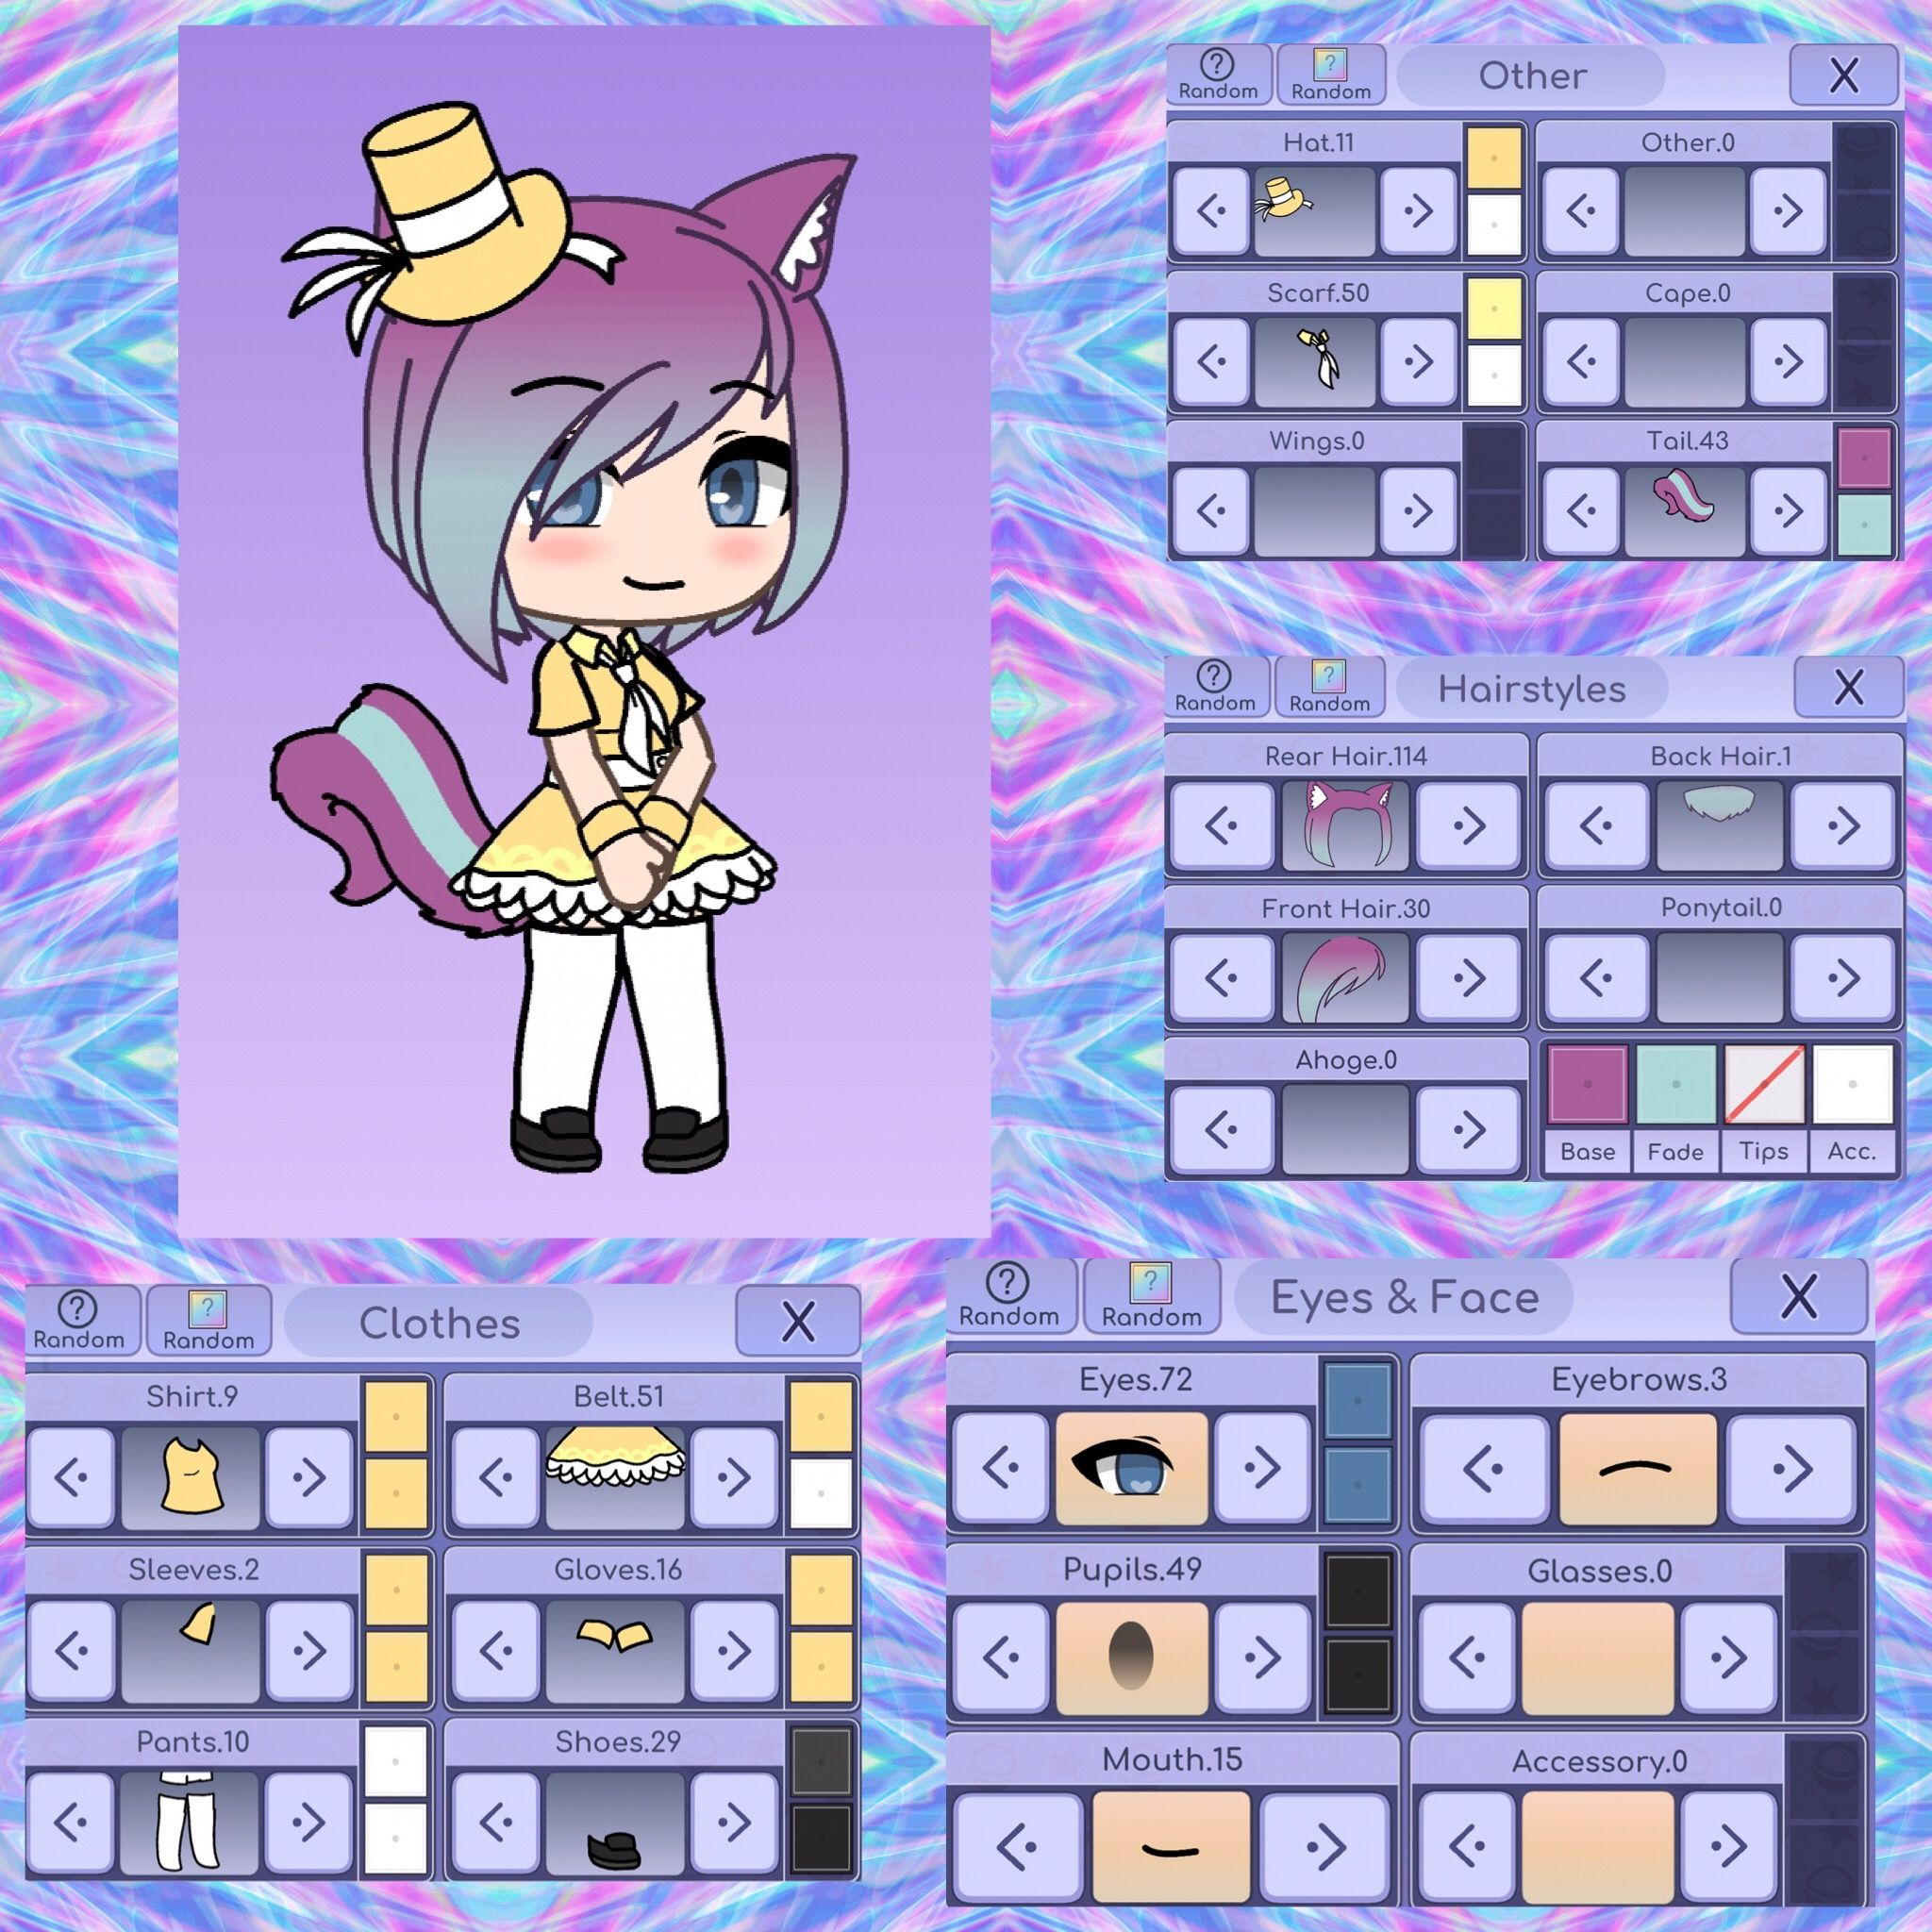 Pin By Little Orca On Gacha Outfits Character Outfits Cute Wallpaper Backgrounds Cute Anime Chibi